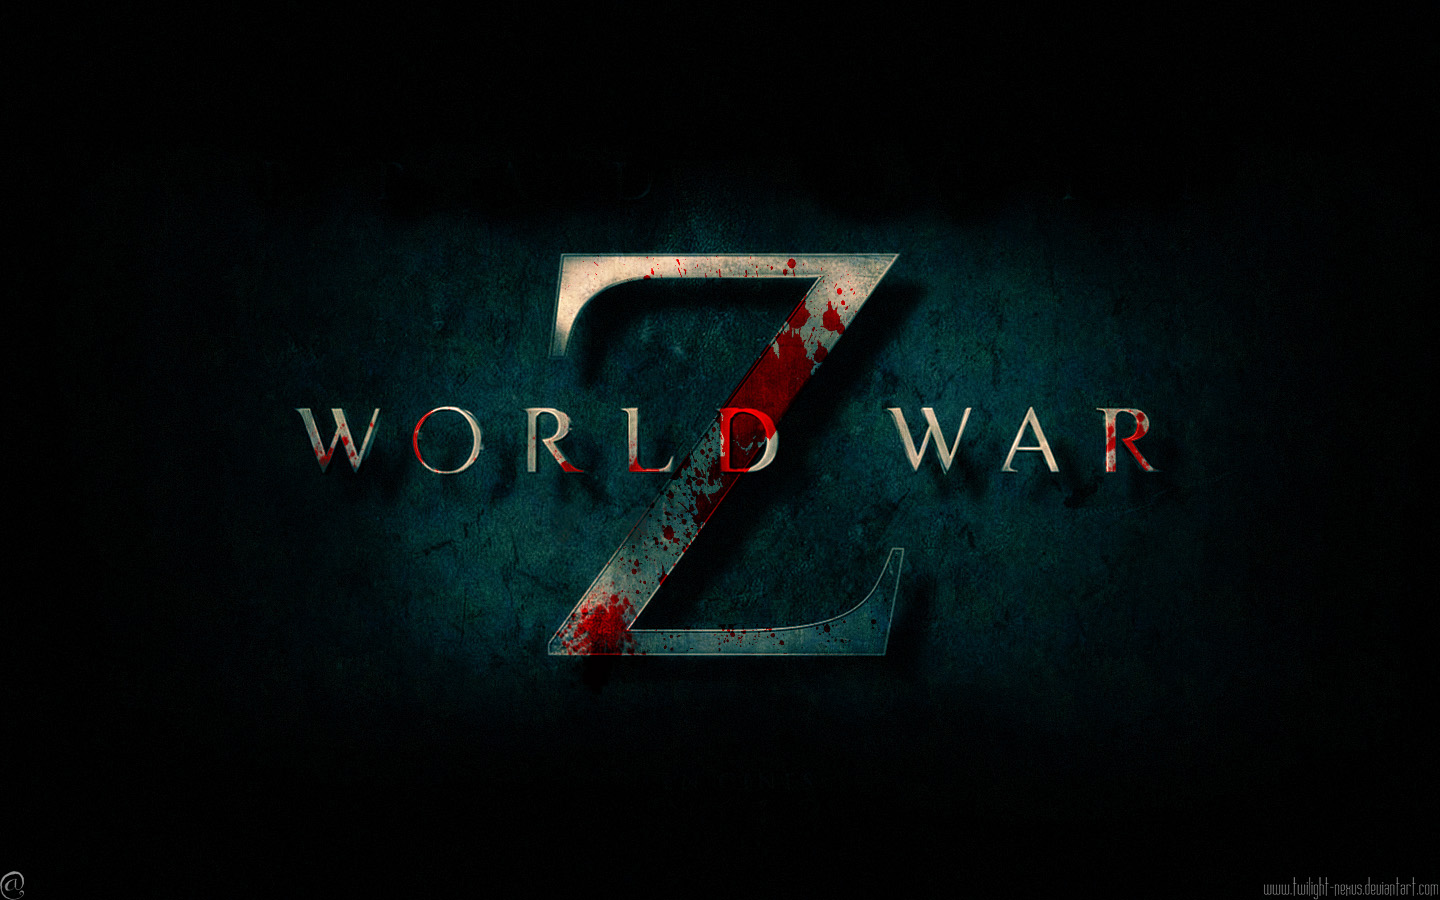 world war World war i or the great war was a global war fought between the allies and the central powers that lasted from 1914 to 1918 ad on june 28, 1914, the great war began when archduke franz ferdinand, heir to the thrones of the austrian-hungarian empire, was killed by an assassin from serbia.